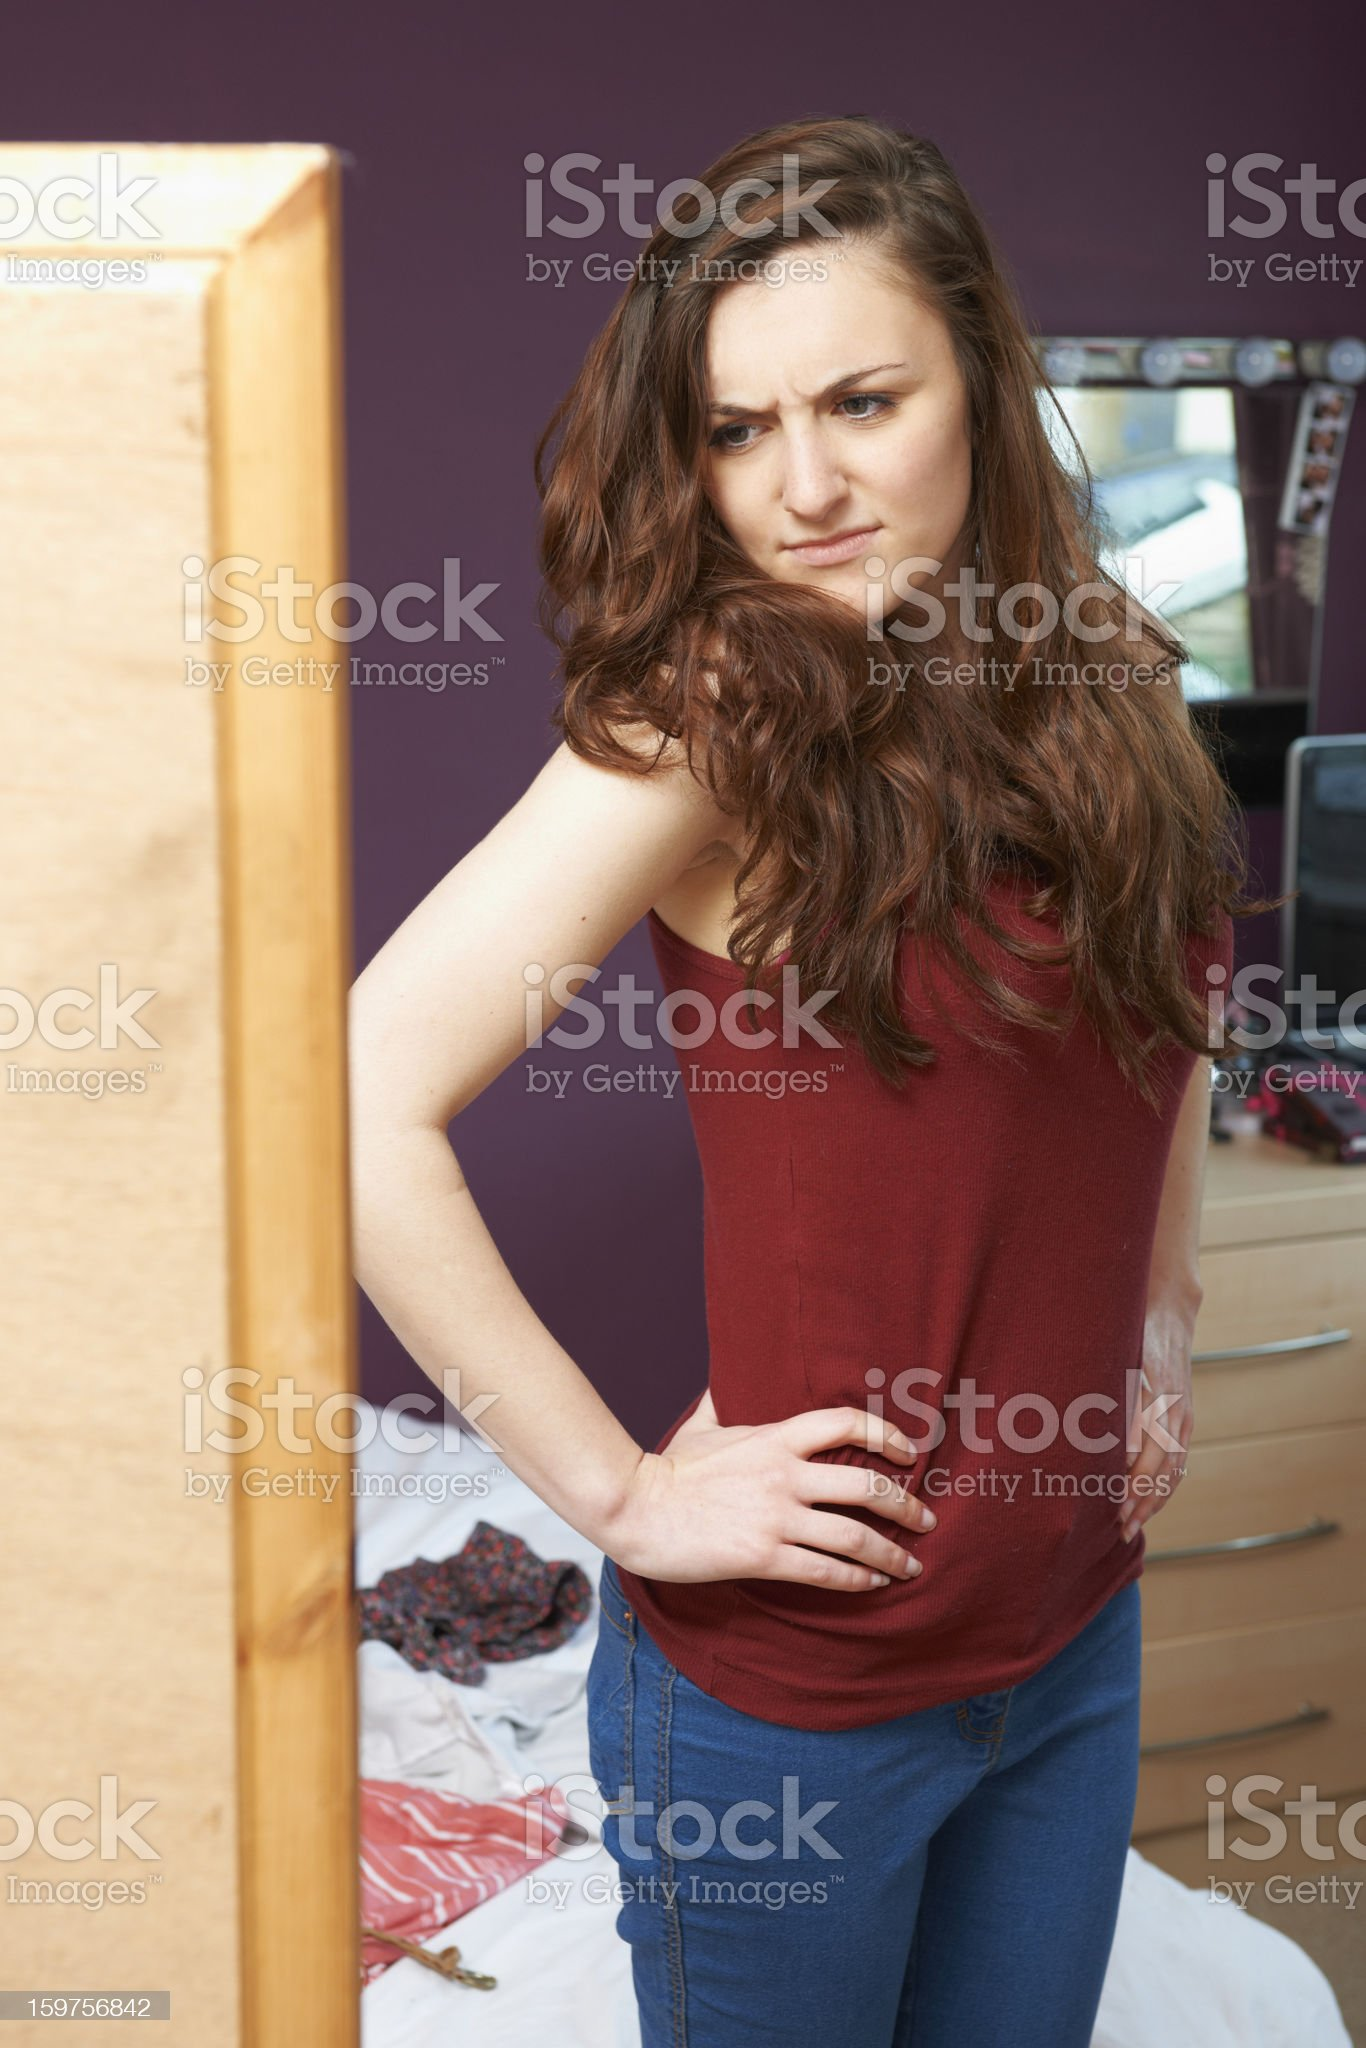 Teenage Girl Looking Unhappily At Herself In The Mirror royalty-free stock photo